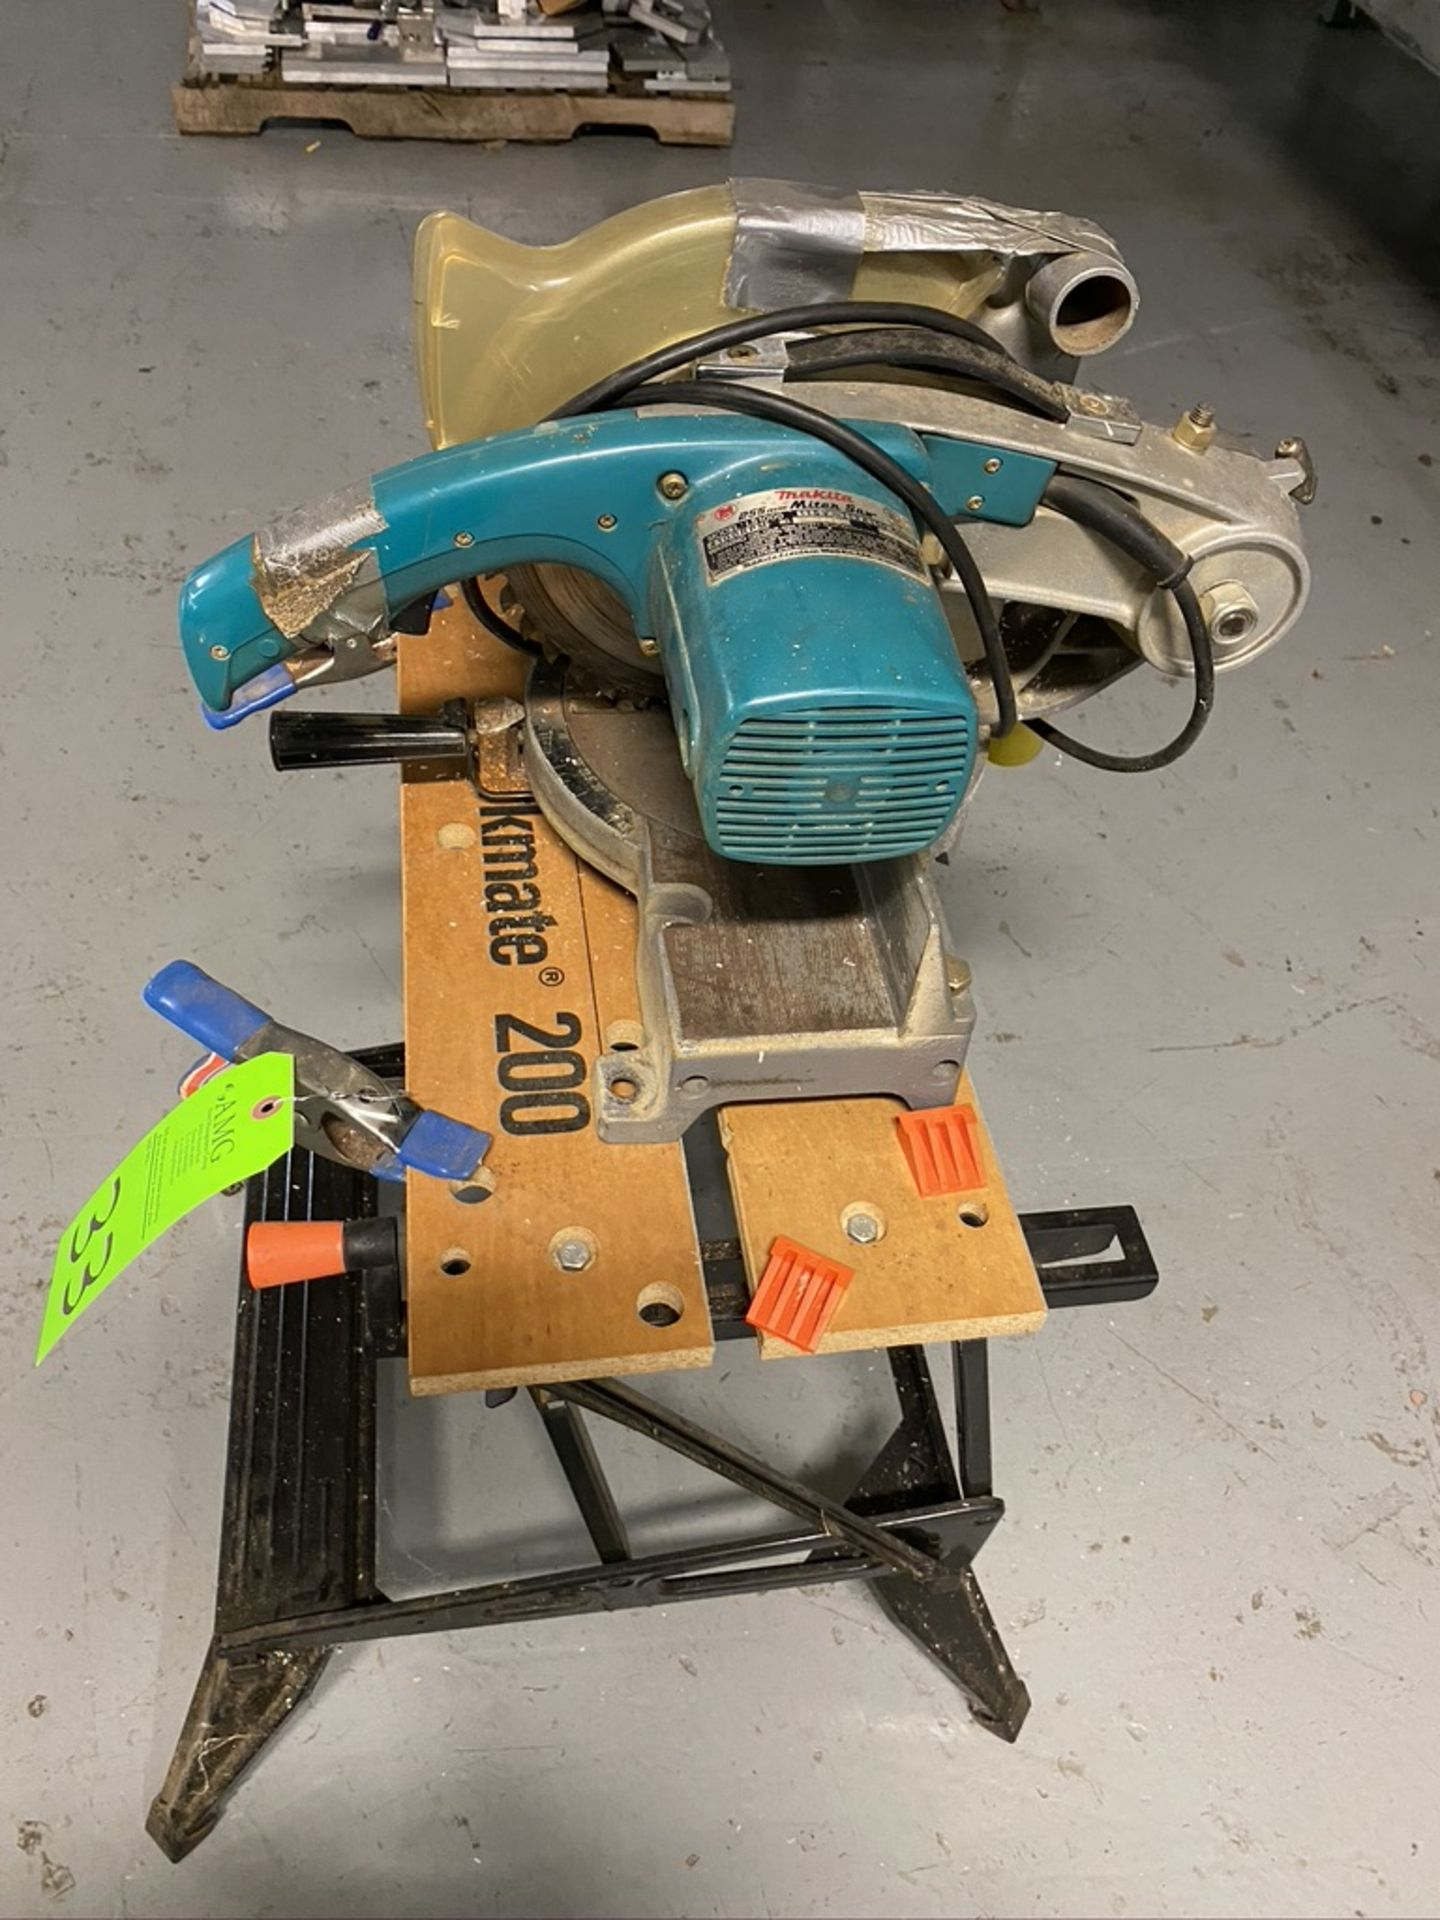 Lot 33 - Makita model Ls-1000 Miter saw and bench